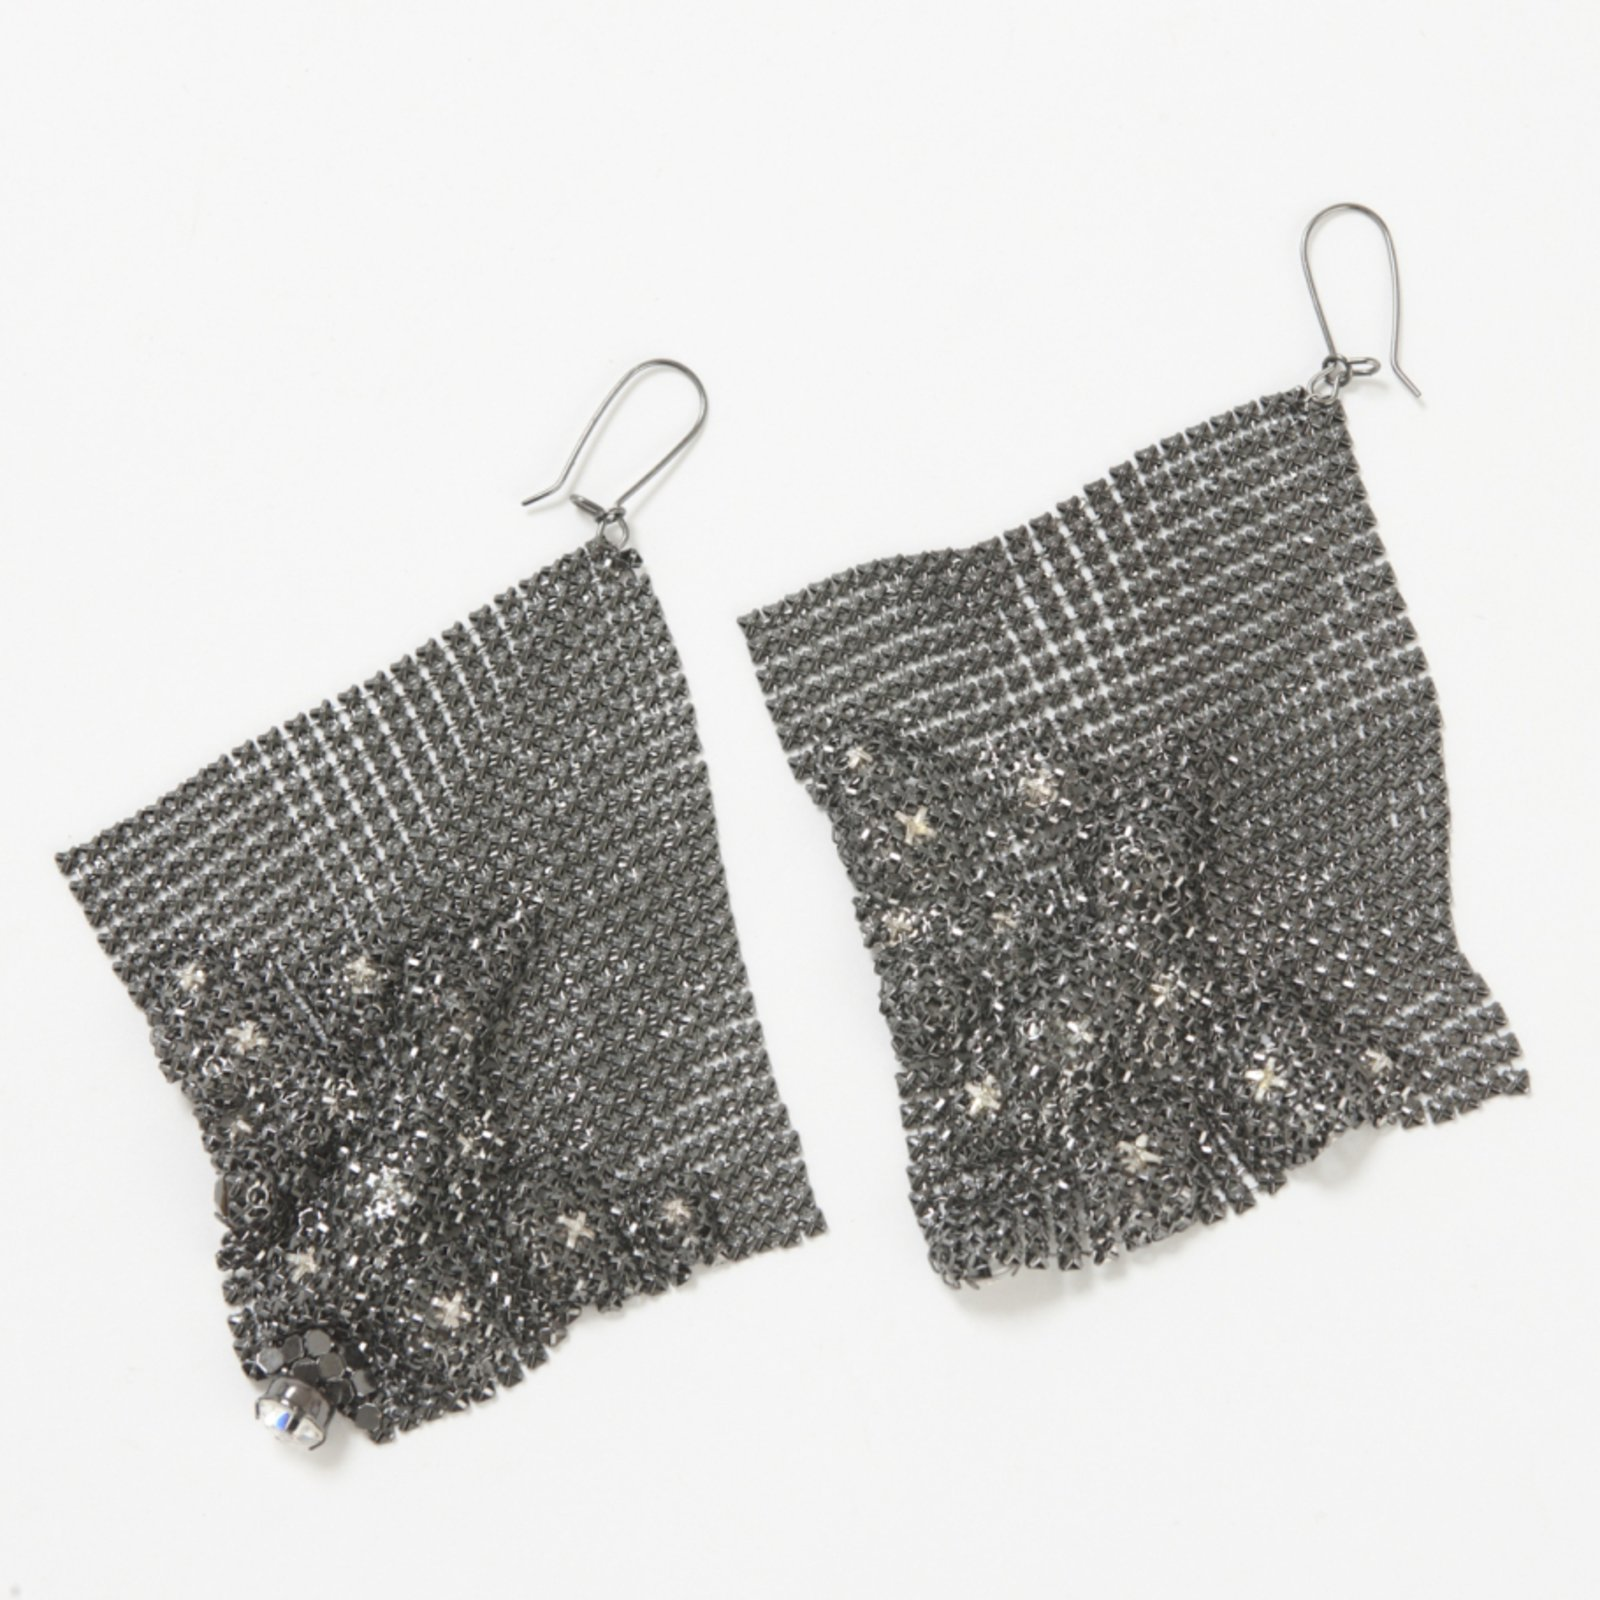 Jimmy Choo For H M Earrings Metal Silvery Ref 31463 Joli Closet